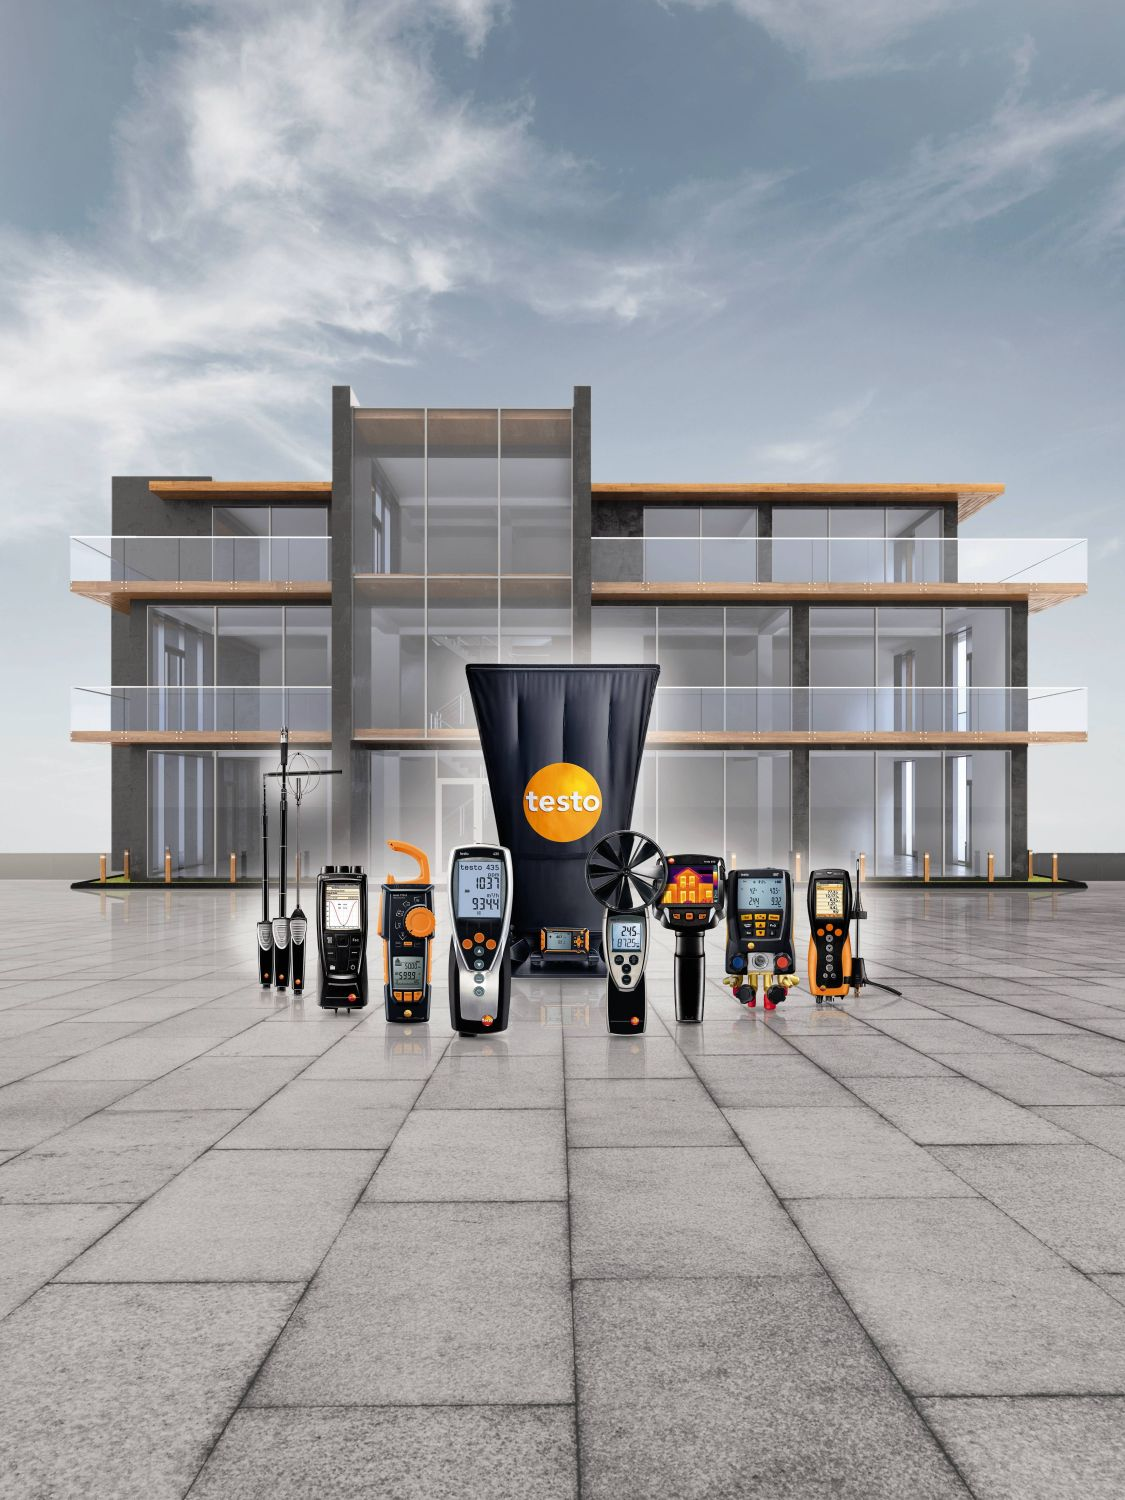 testo-facility-management-key-visual-building-portrait.jpg